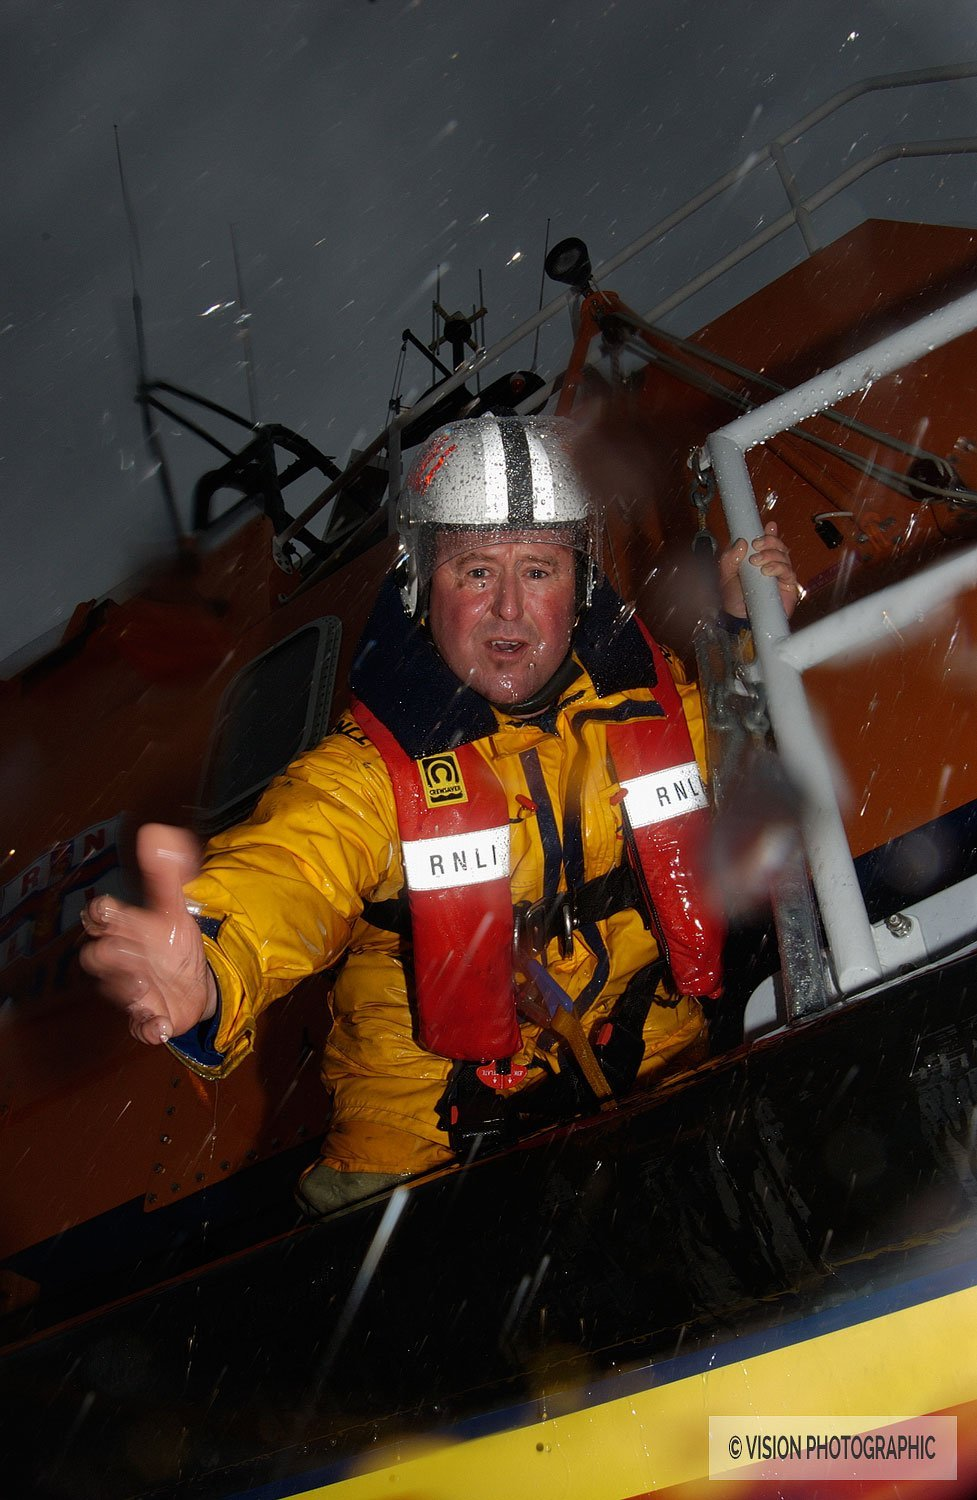 Advertising photography for RNLI